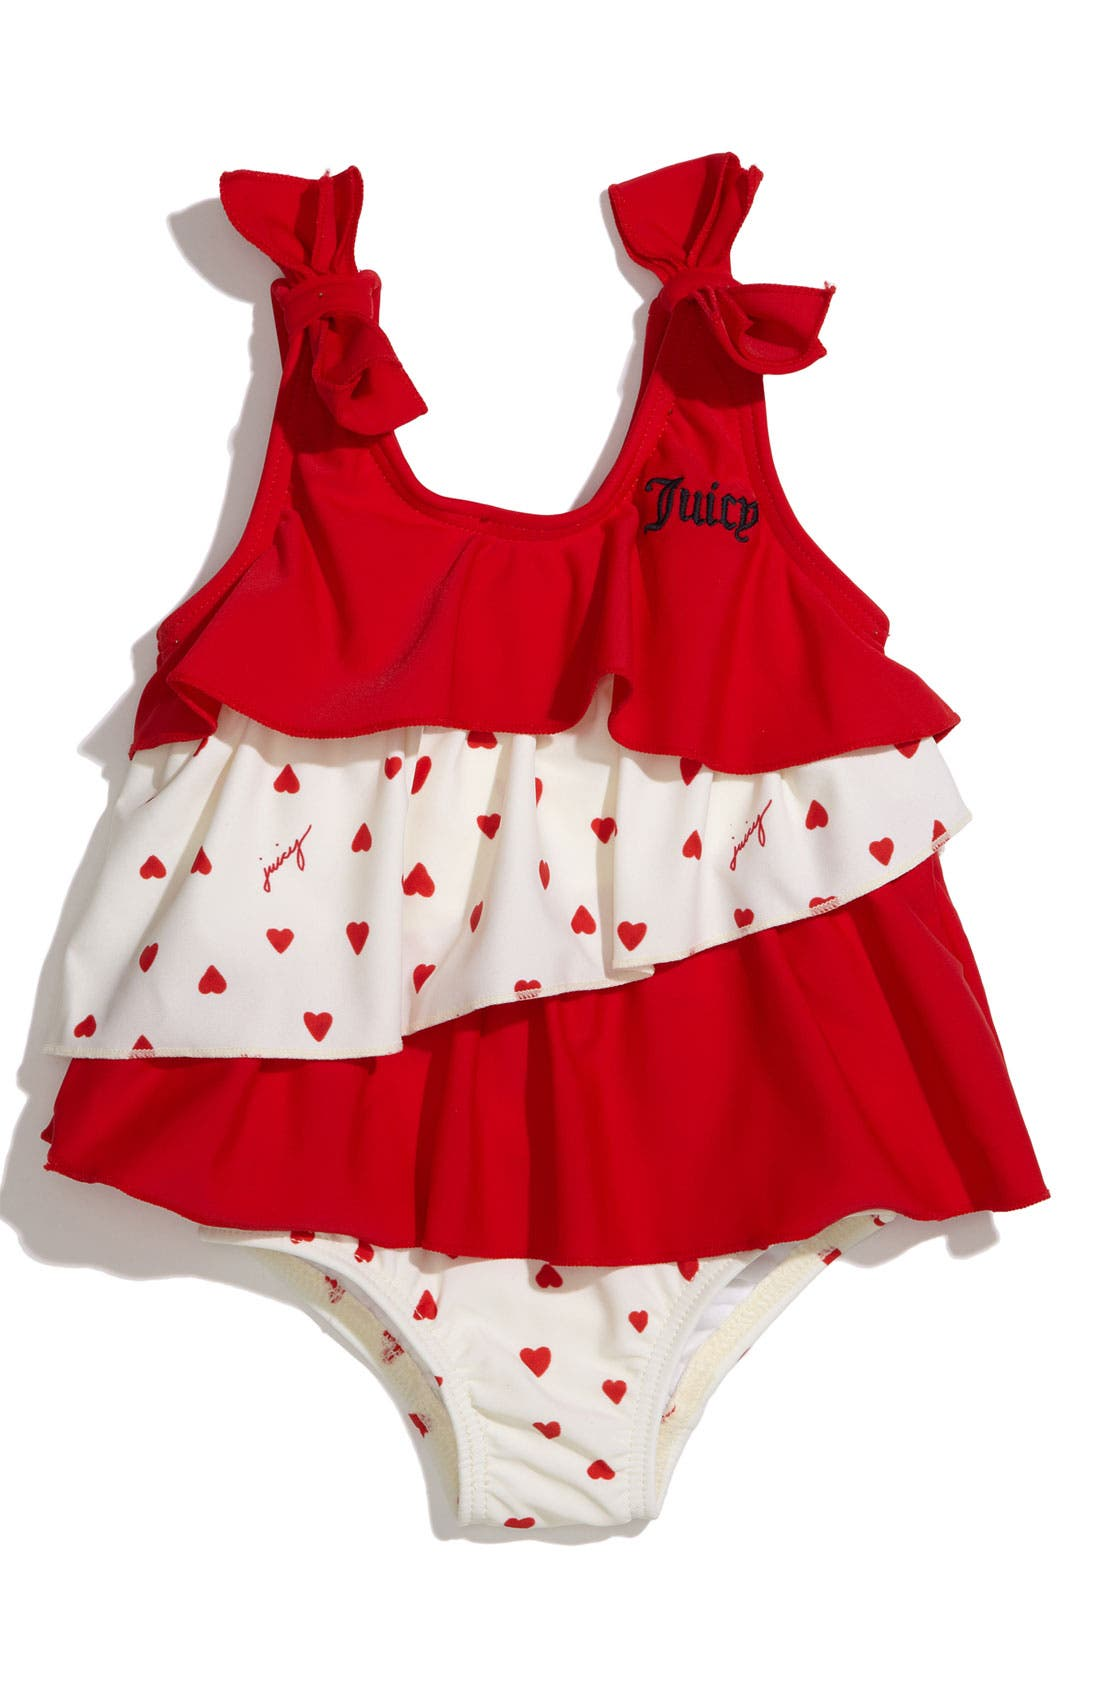 Alternate Image 1 Selected - Juicy Couture One Piece Swimsuit (Infant)